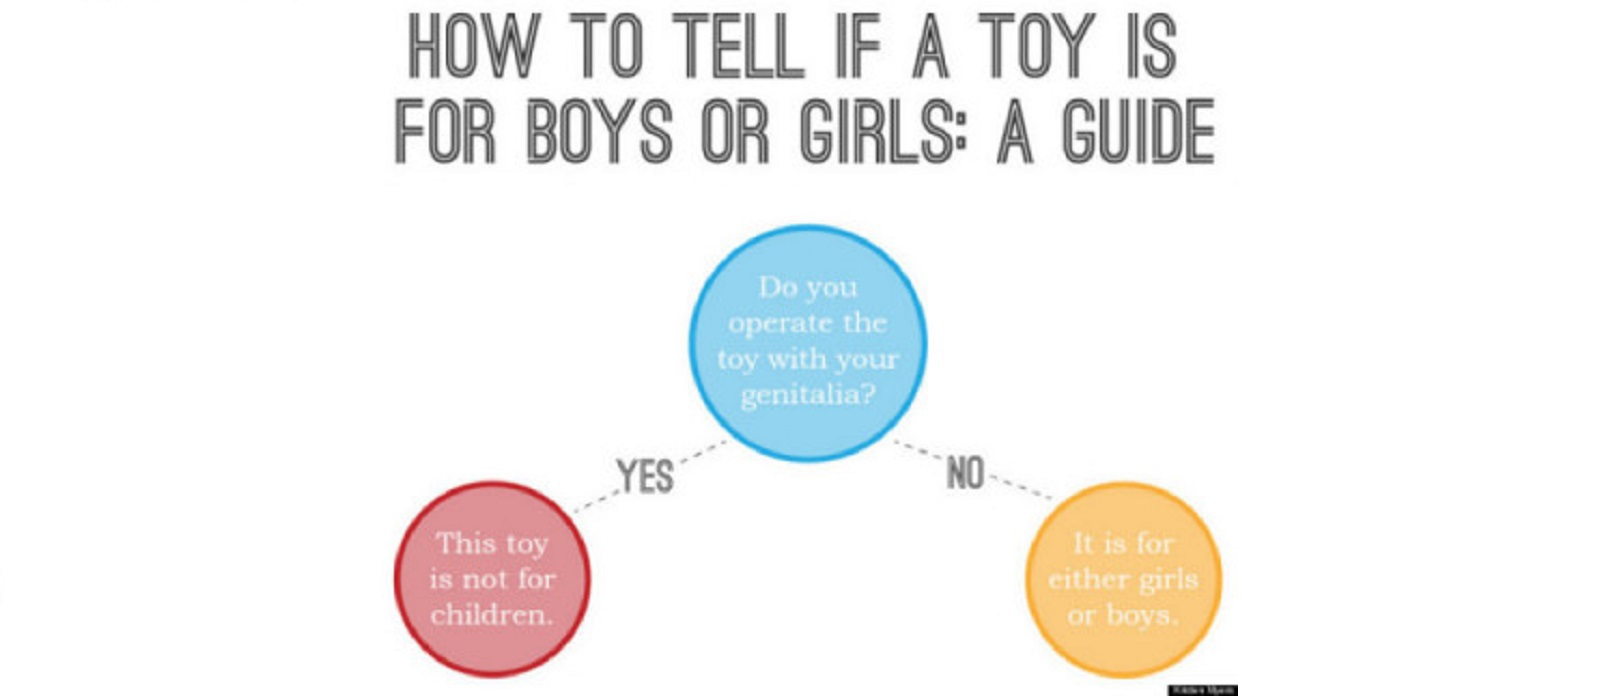 Guide in how to tell if a toy is for a boy or a girl. If use for genitalia, not use for children. If not, for both girls and boys.